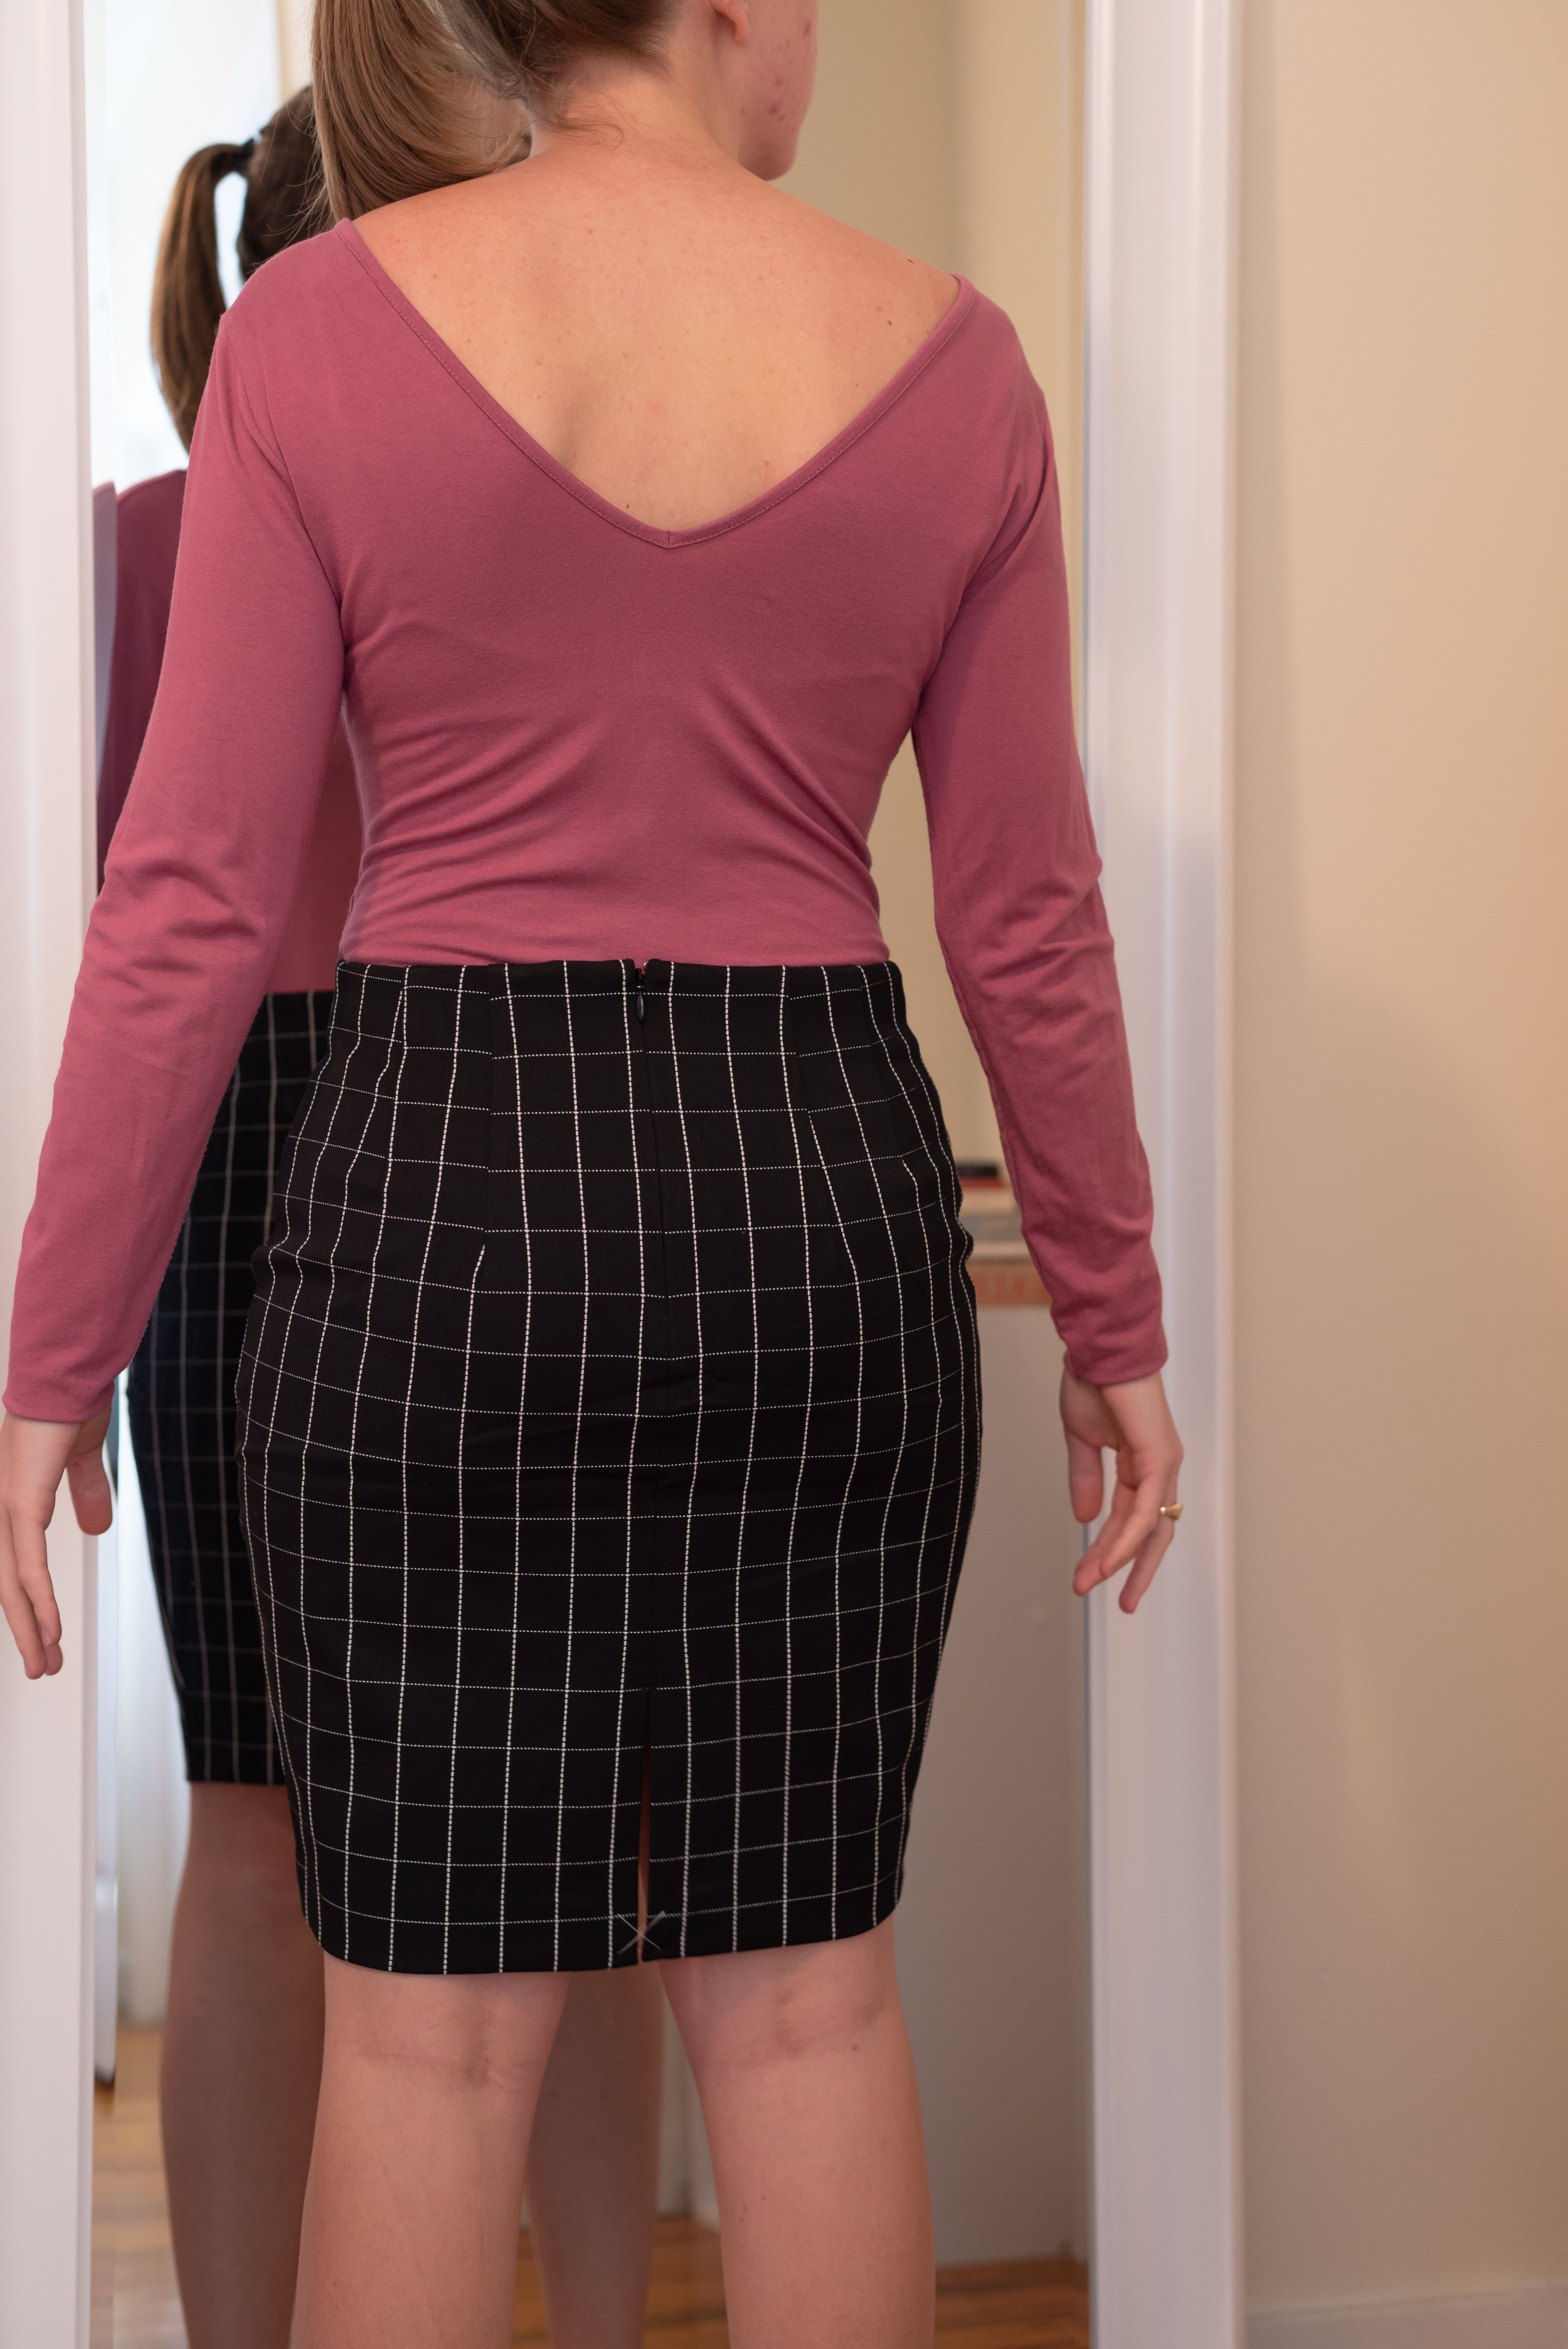 Express Petite High Waisted Windowpane Pencil Skirt - Size S